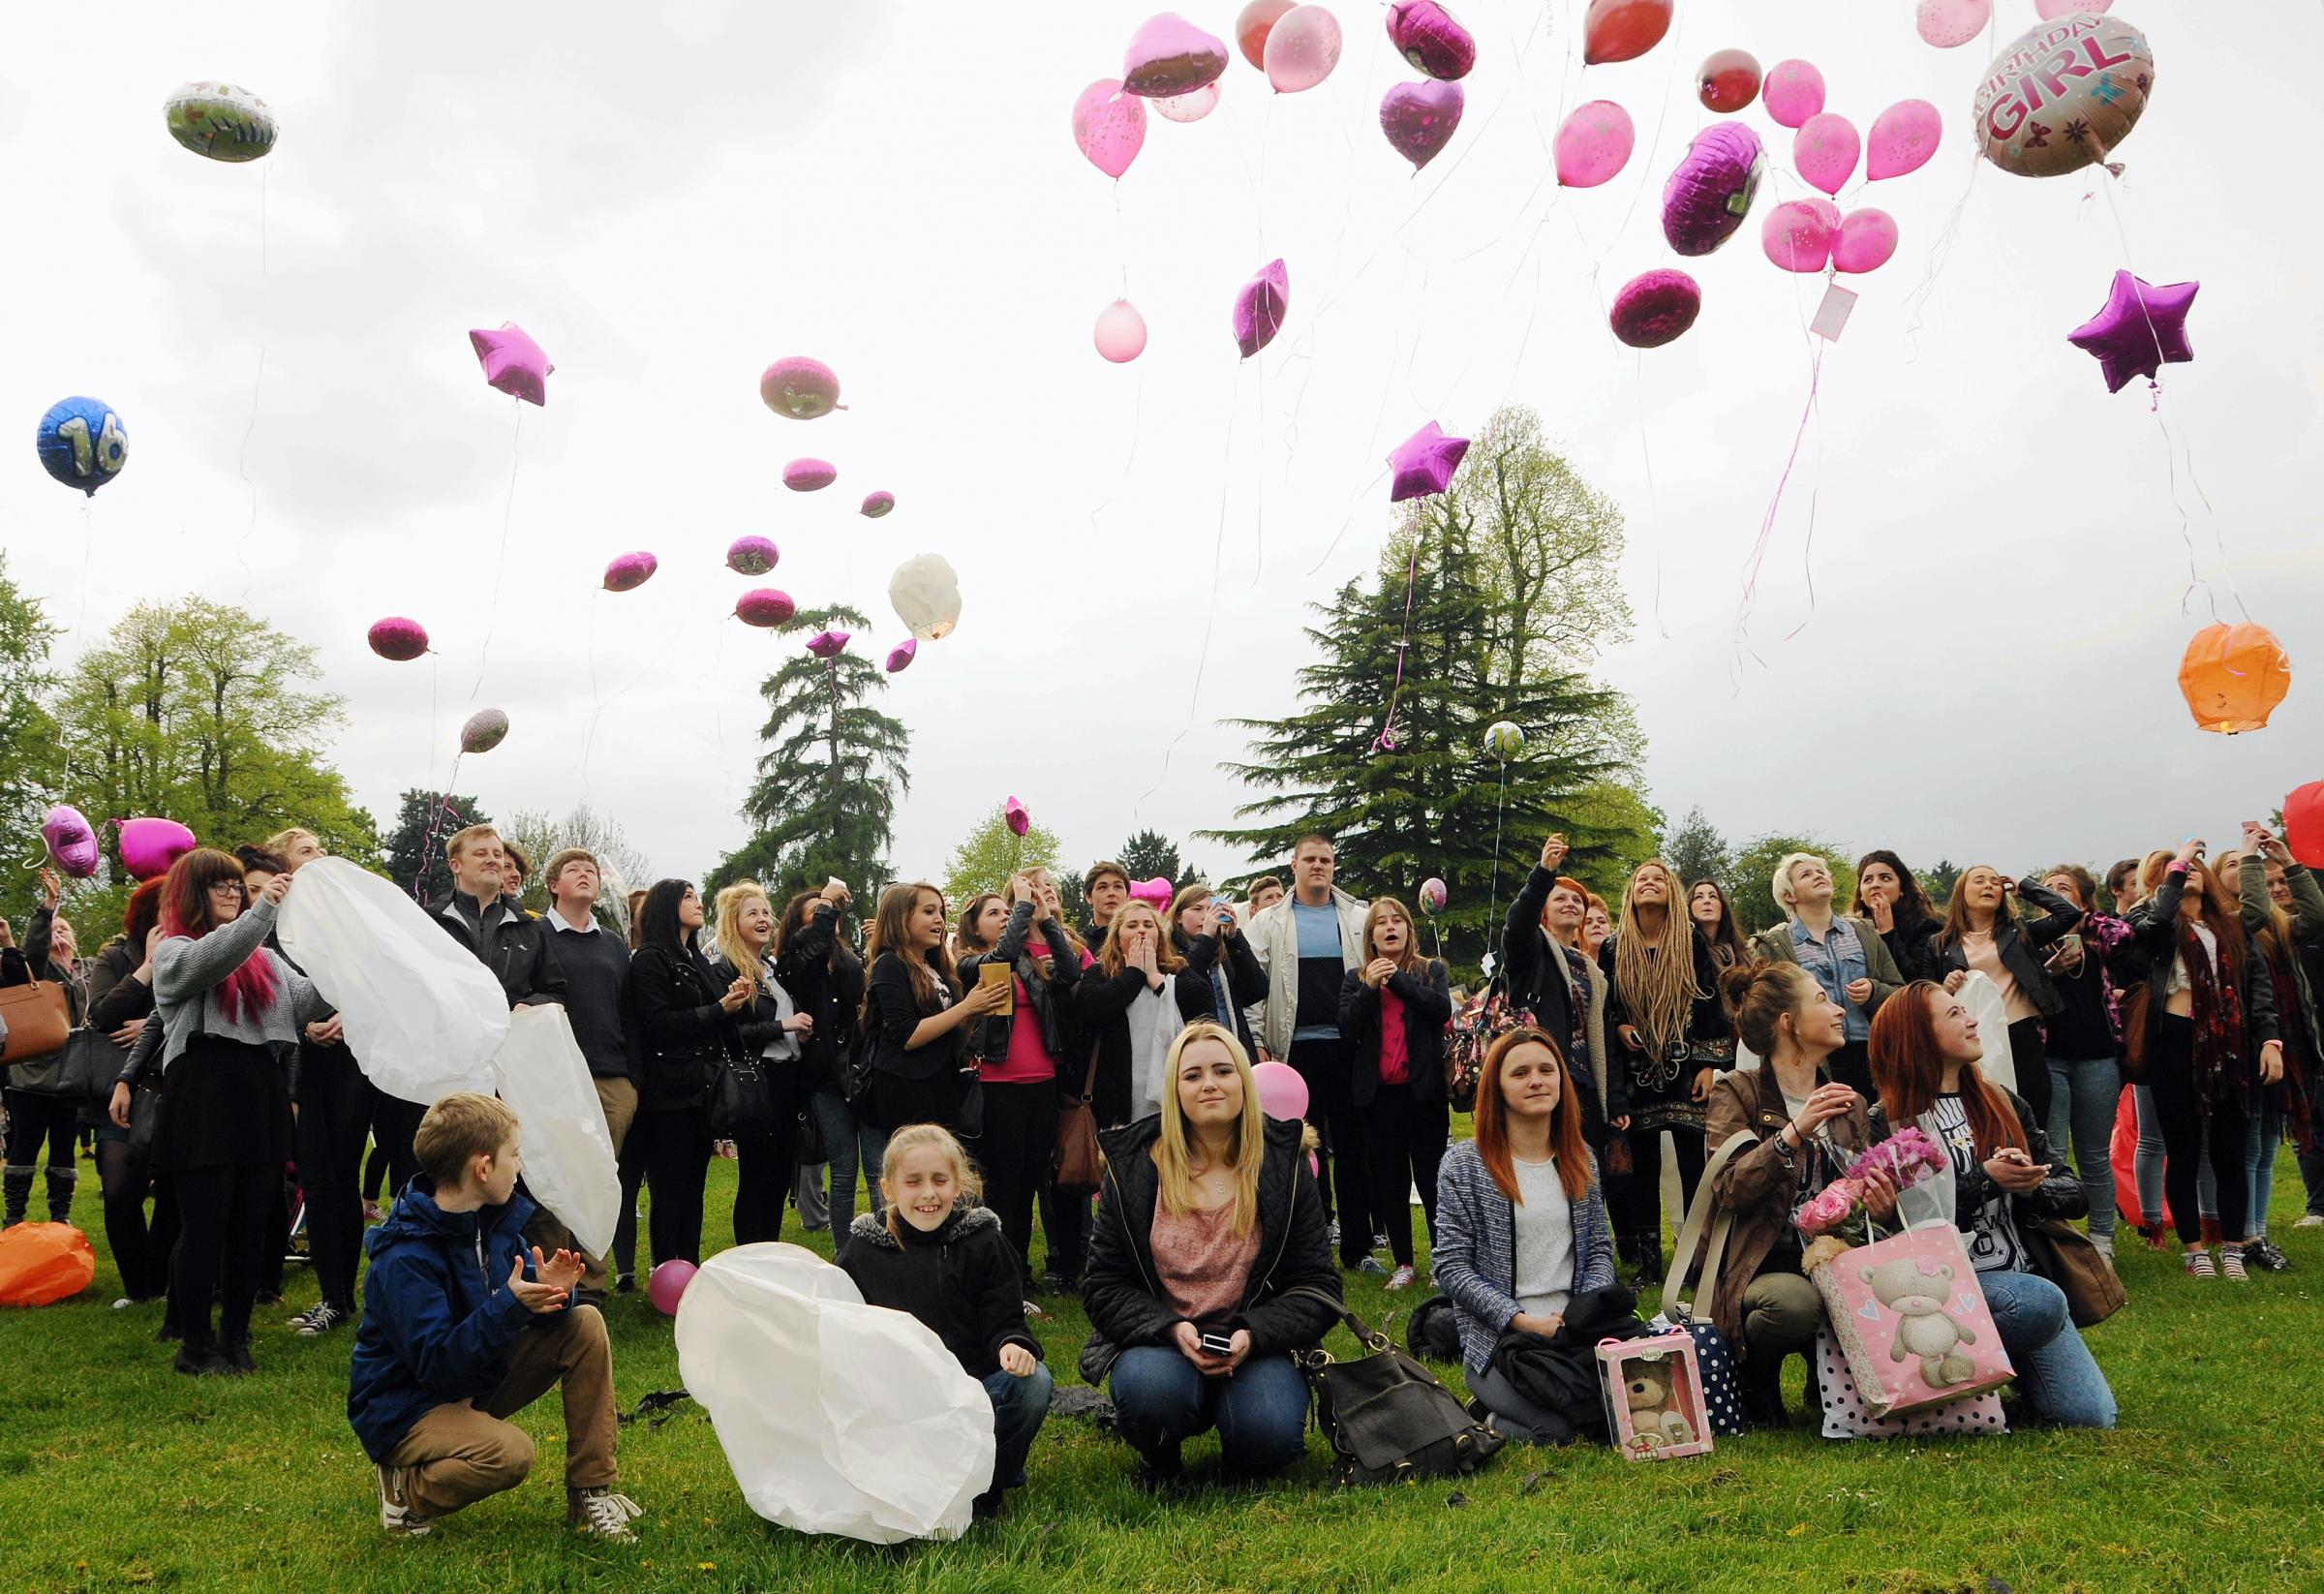 Balloon release tribute to mark birthday of Basingstoke schoolgirl Whitney Berridge